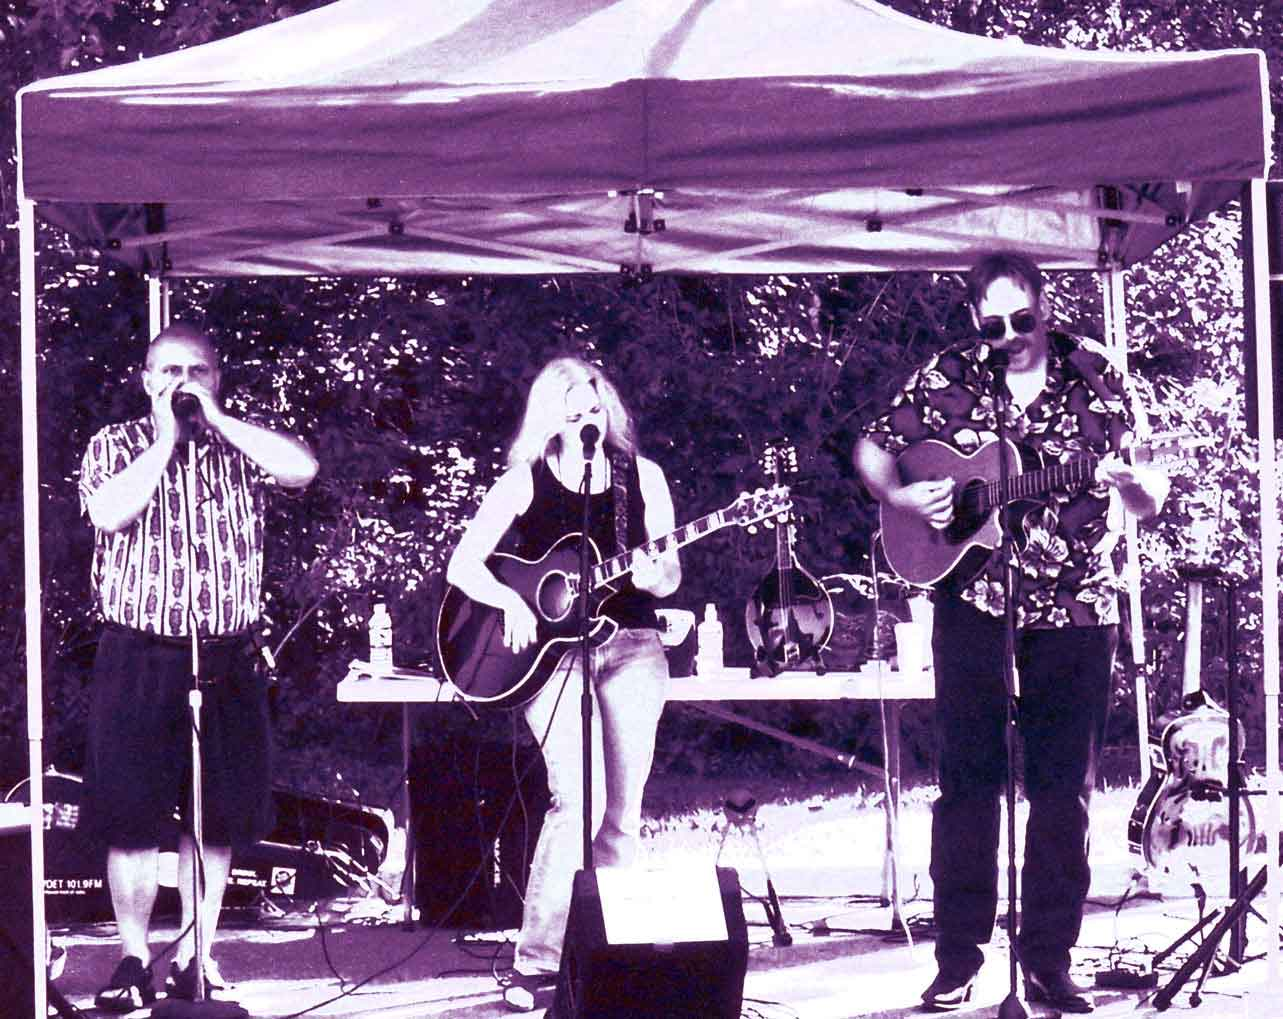 2005 - Maggie's Farm performing at the Birmingham Farmers Market